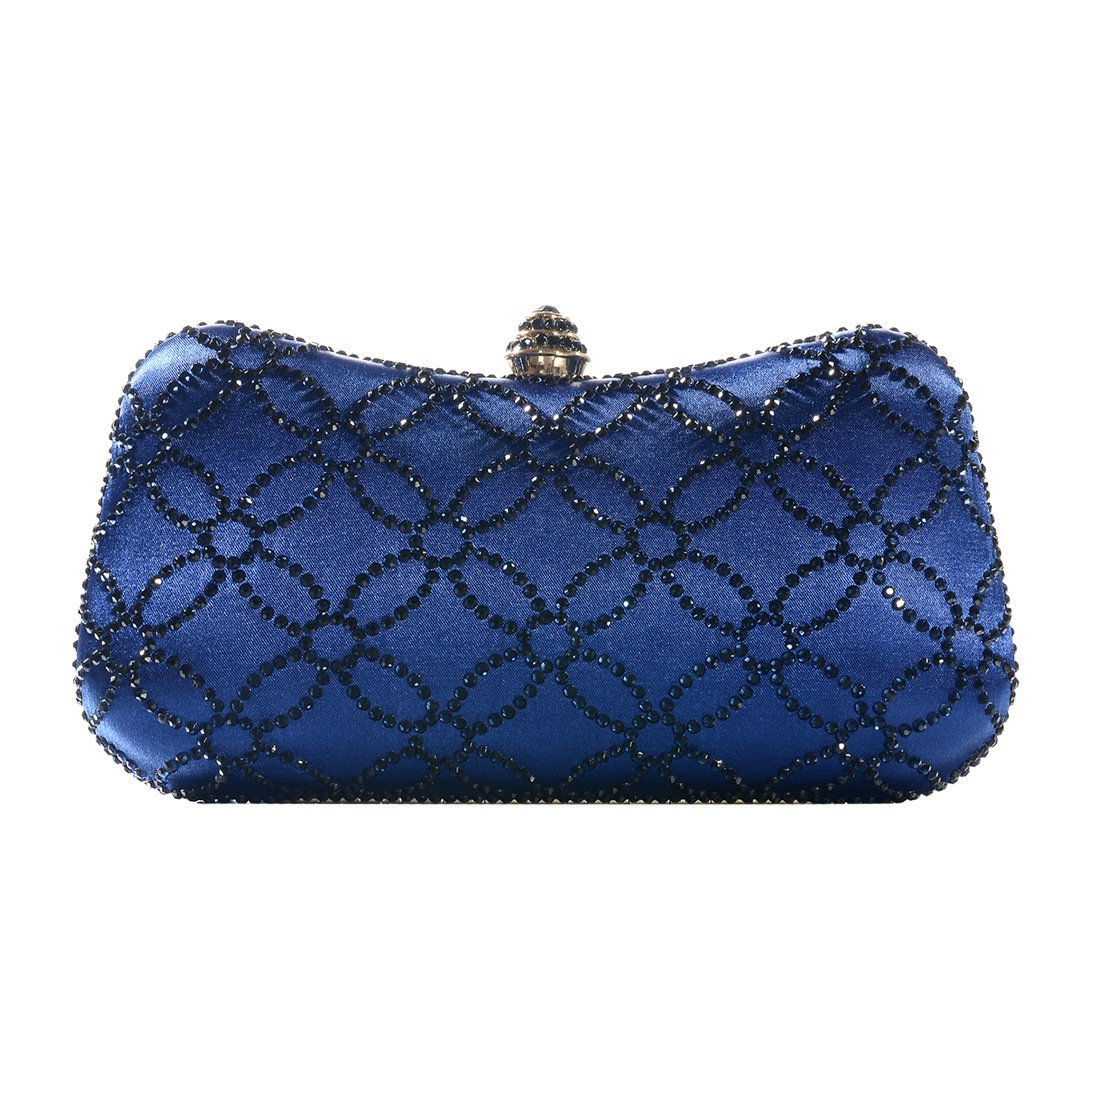 DMIX Women Clutch Purse Hard Case Shiny Evening Bag Glitter Handbag With Chain Strap Navy Blue